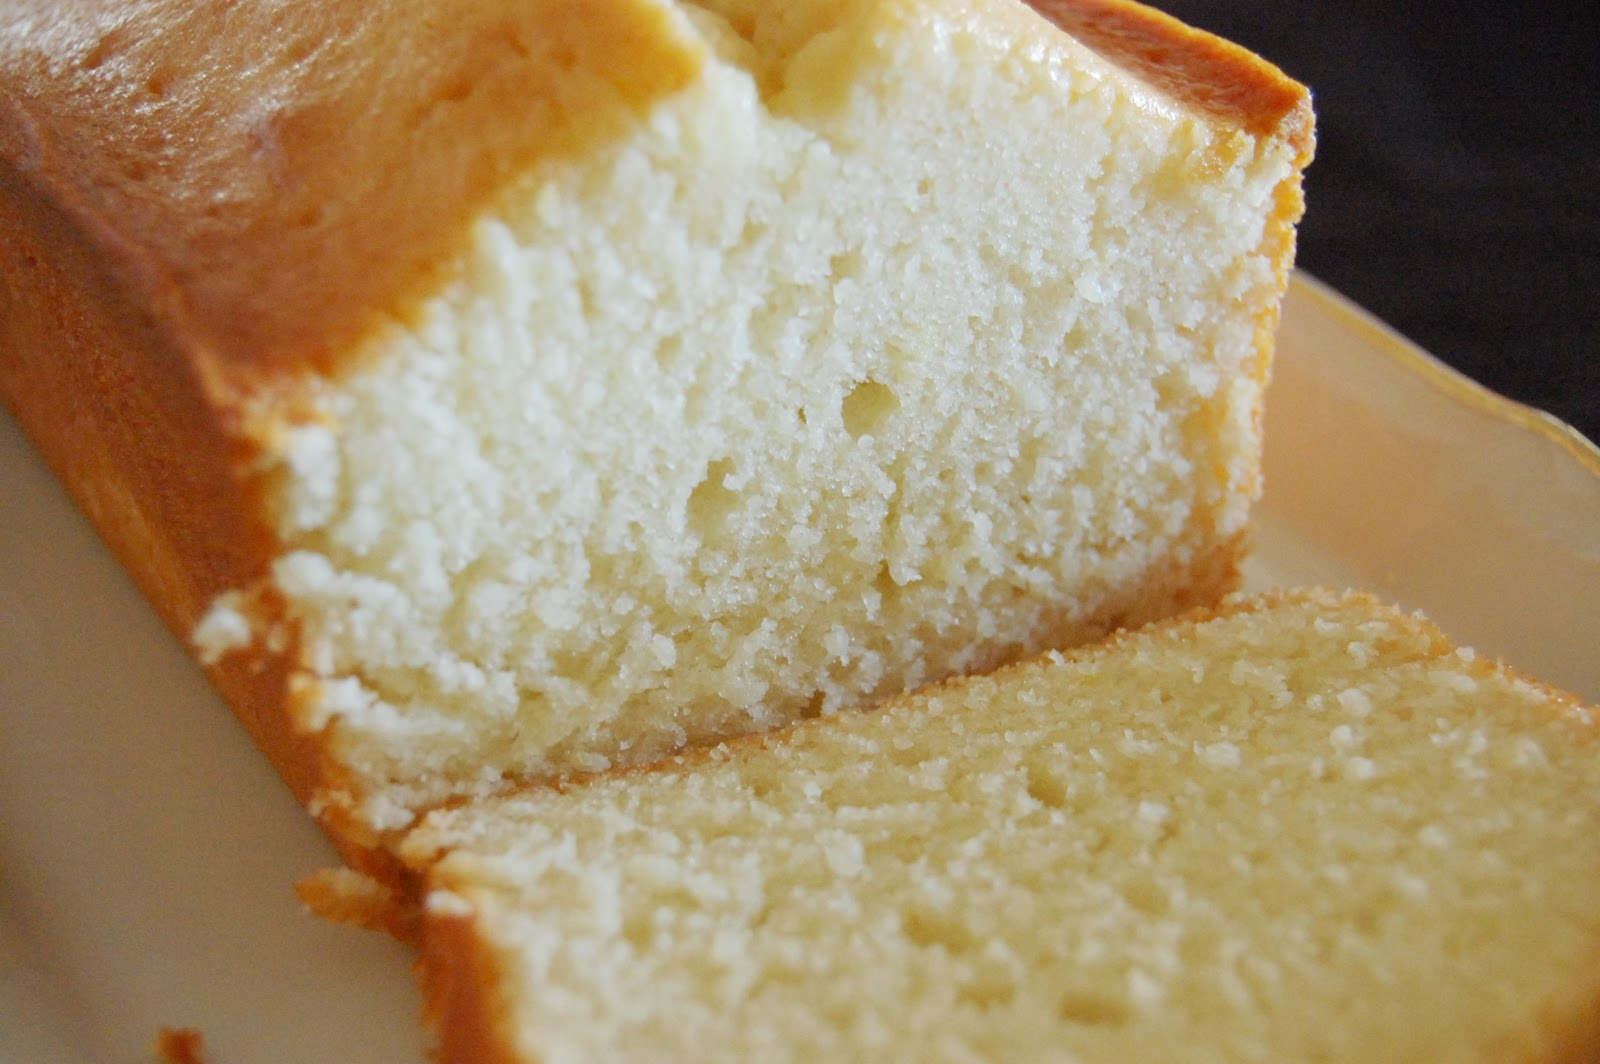 Life's a Piece of Cake: Lemon Pound Cake